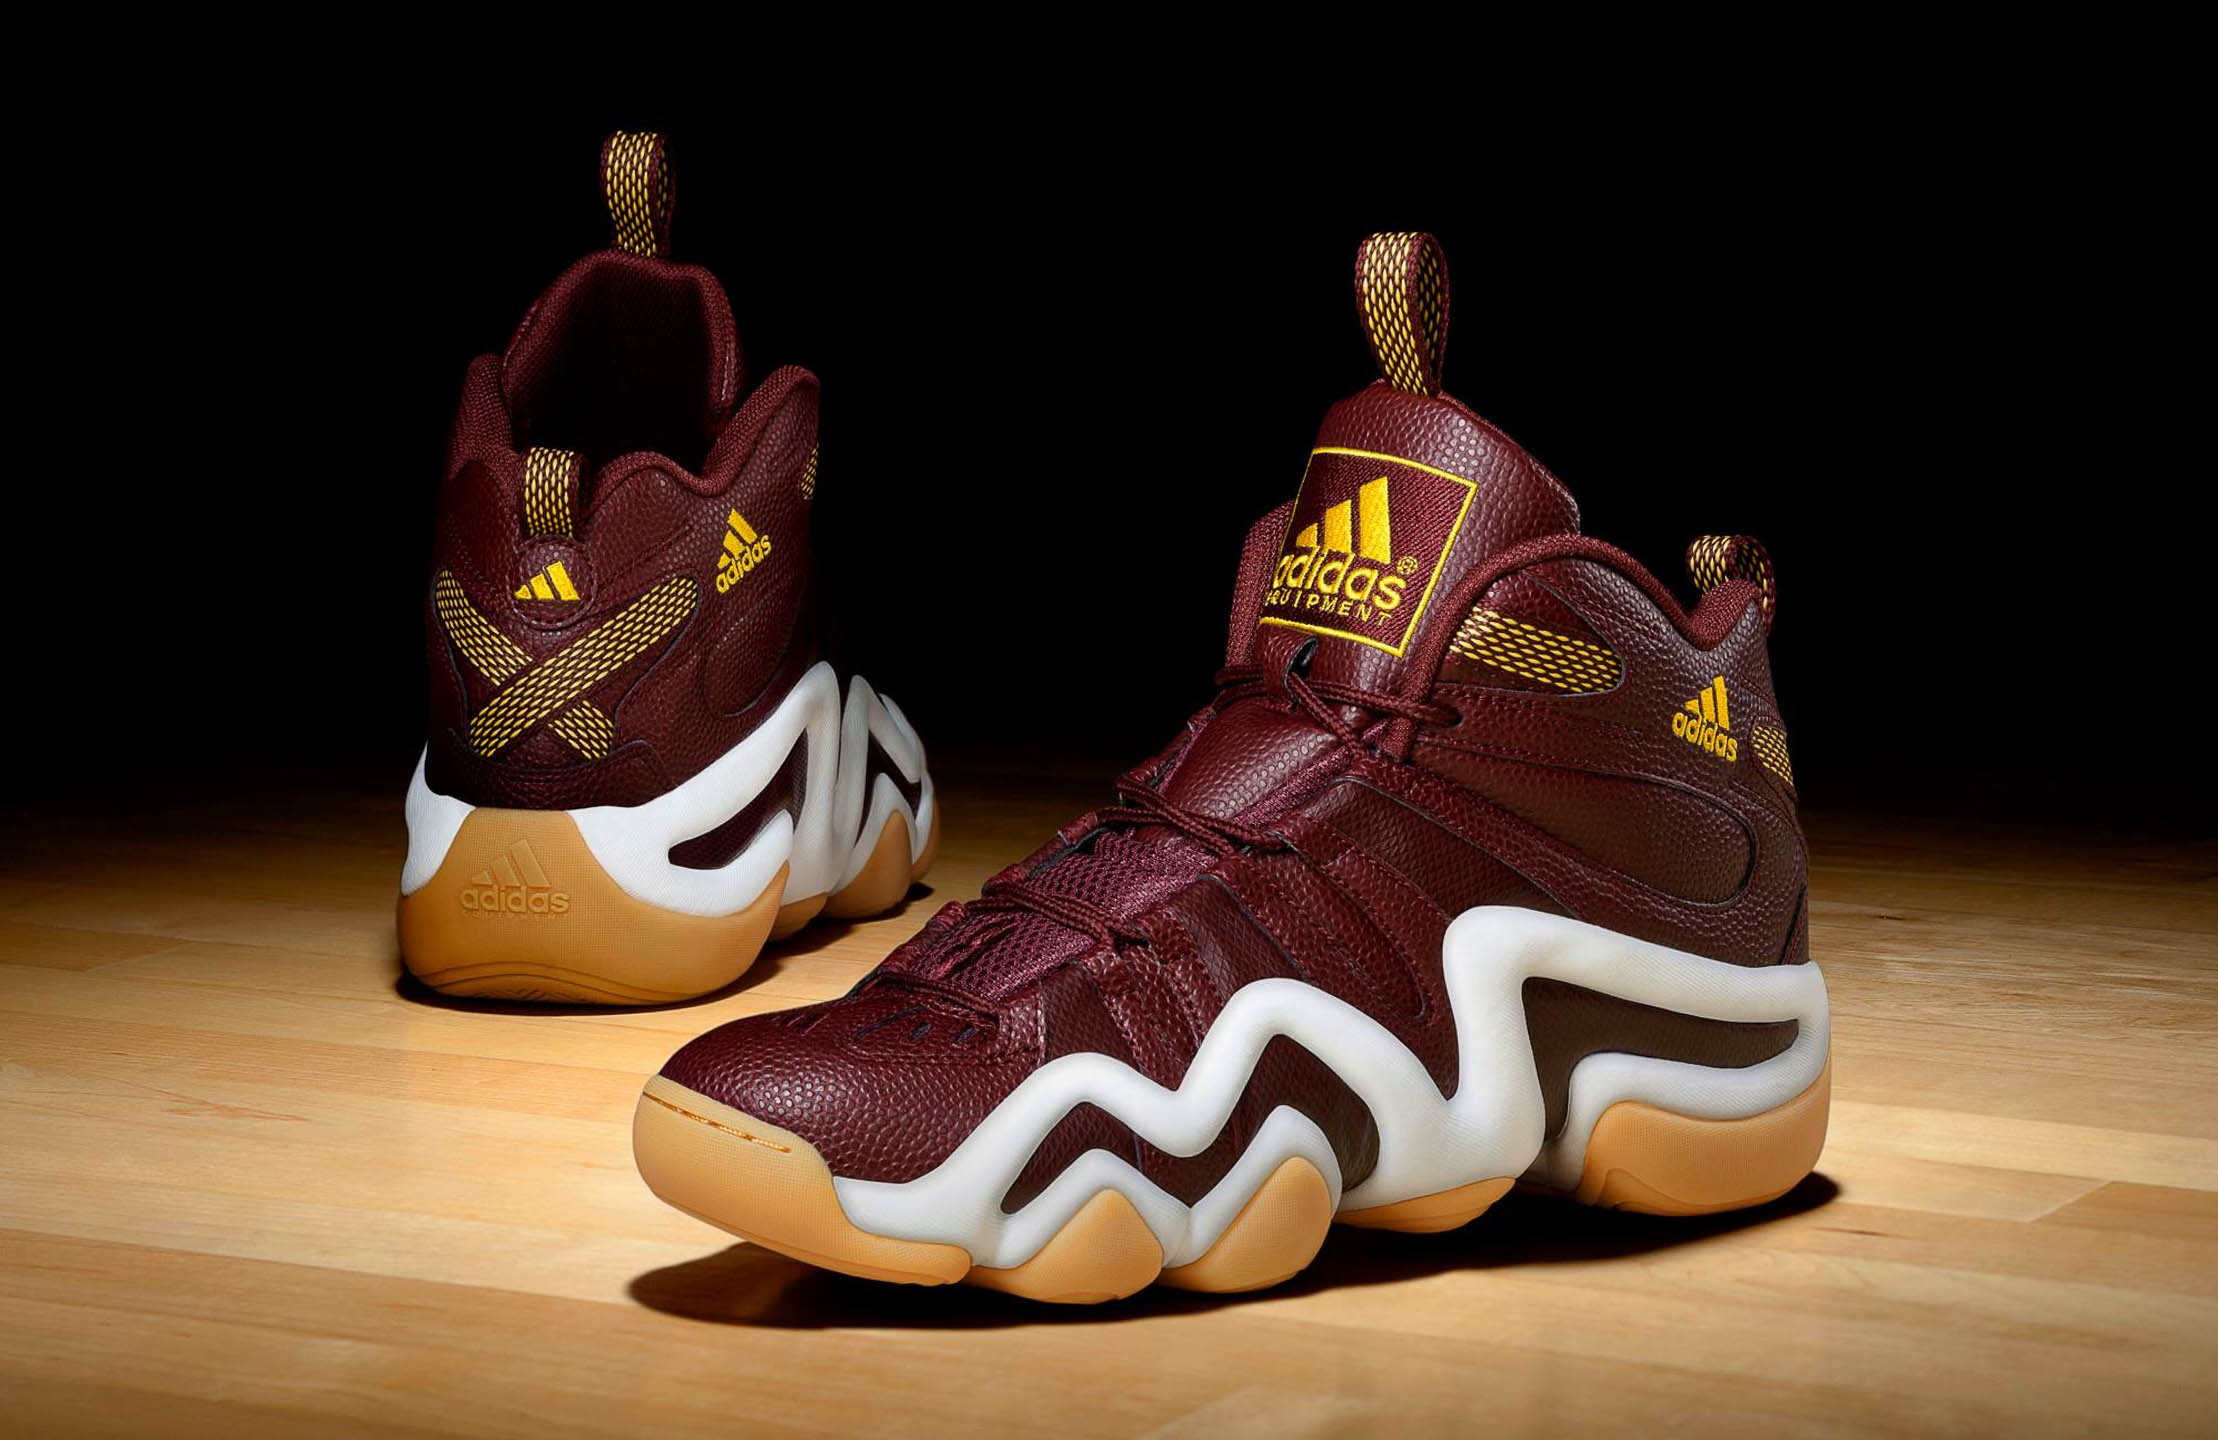 Adidas Crazy 8 basketball footwear by Steve Temple Photography